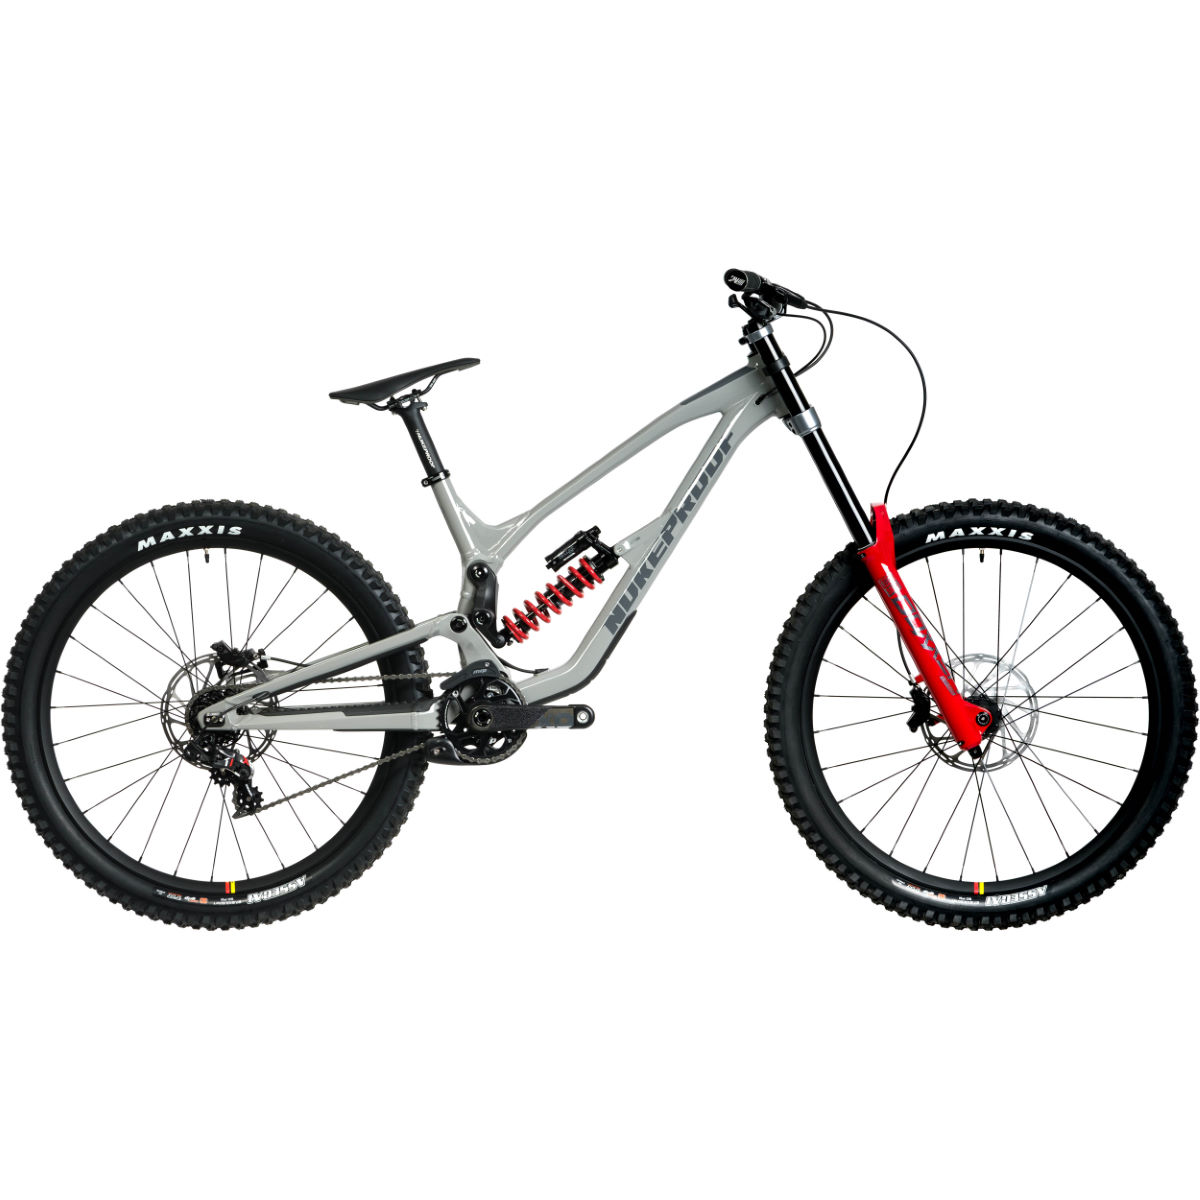 Nukeproof Nukeproof Dissent 275 RS DH Bike (XO1 - 2020)   Full Suspension Mountain Bikes